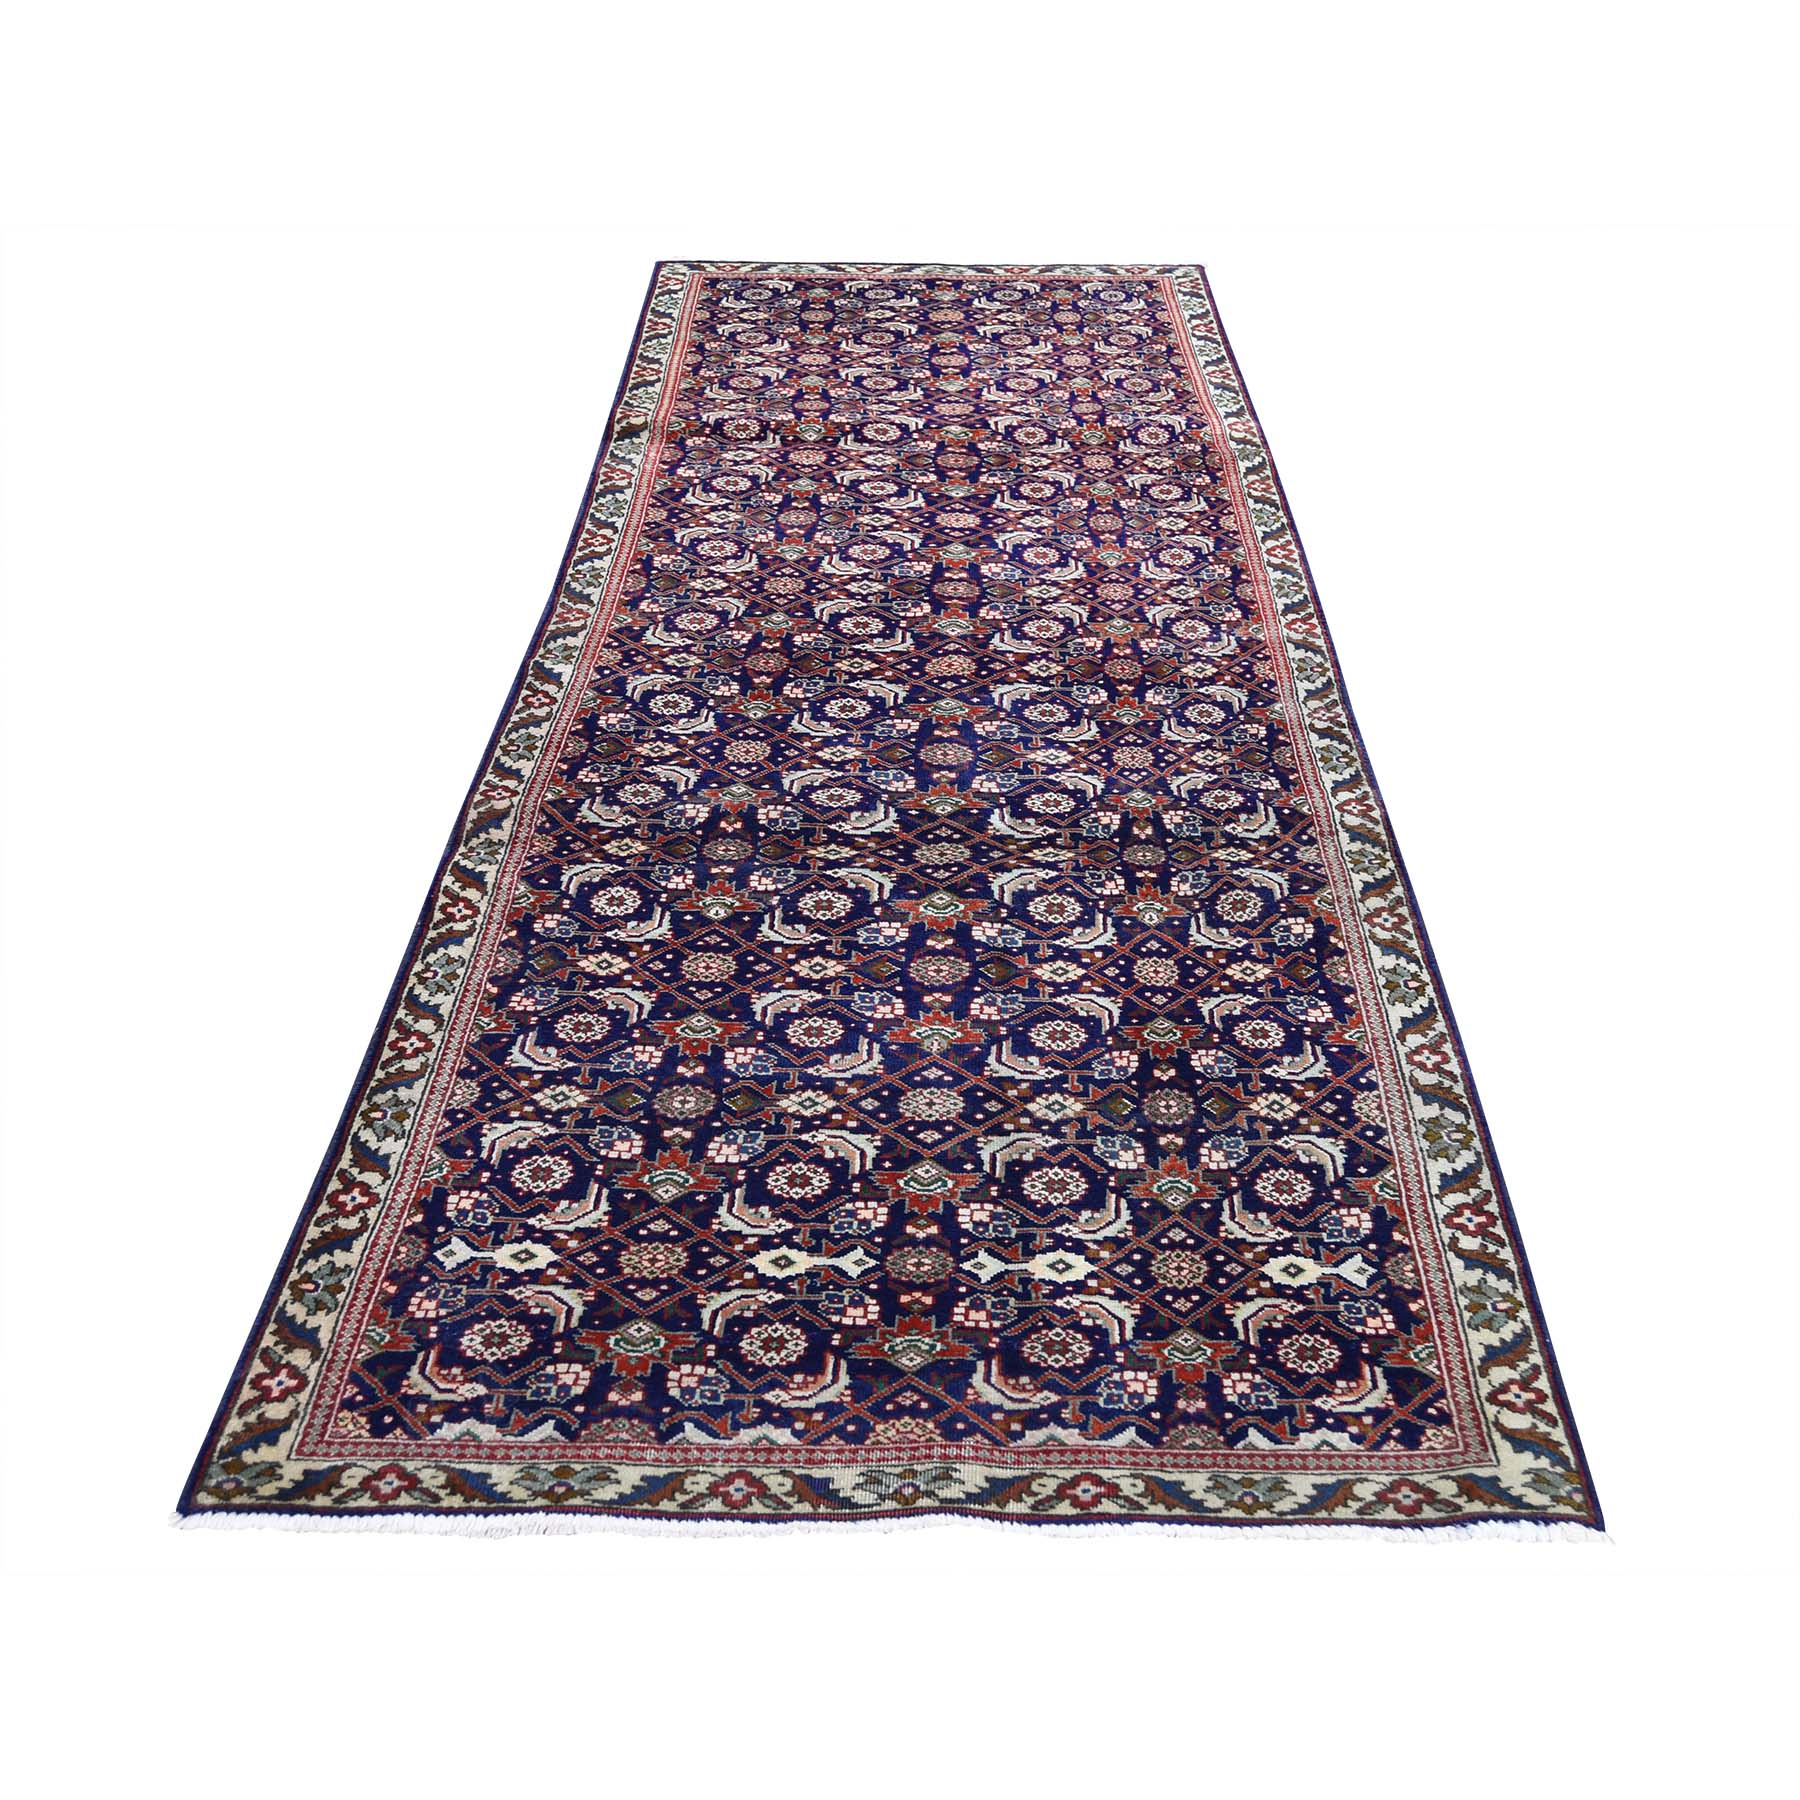 3-1 x9-6  Navy Vintage Persian Fish Design Tabriz Hand-Knotted Runner Oriental Rug